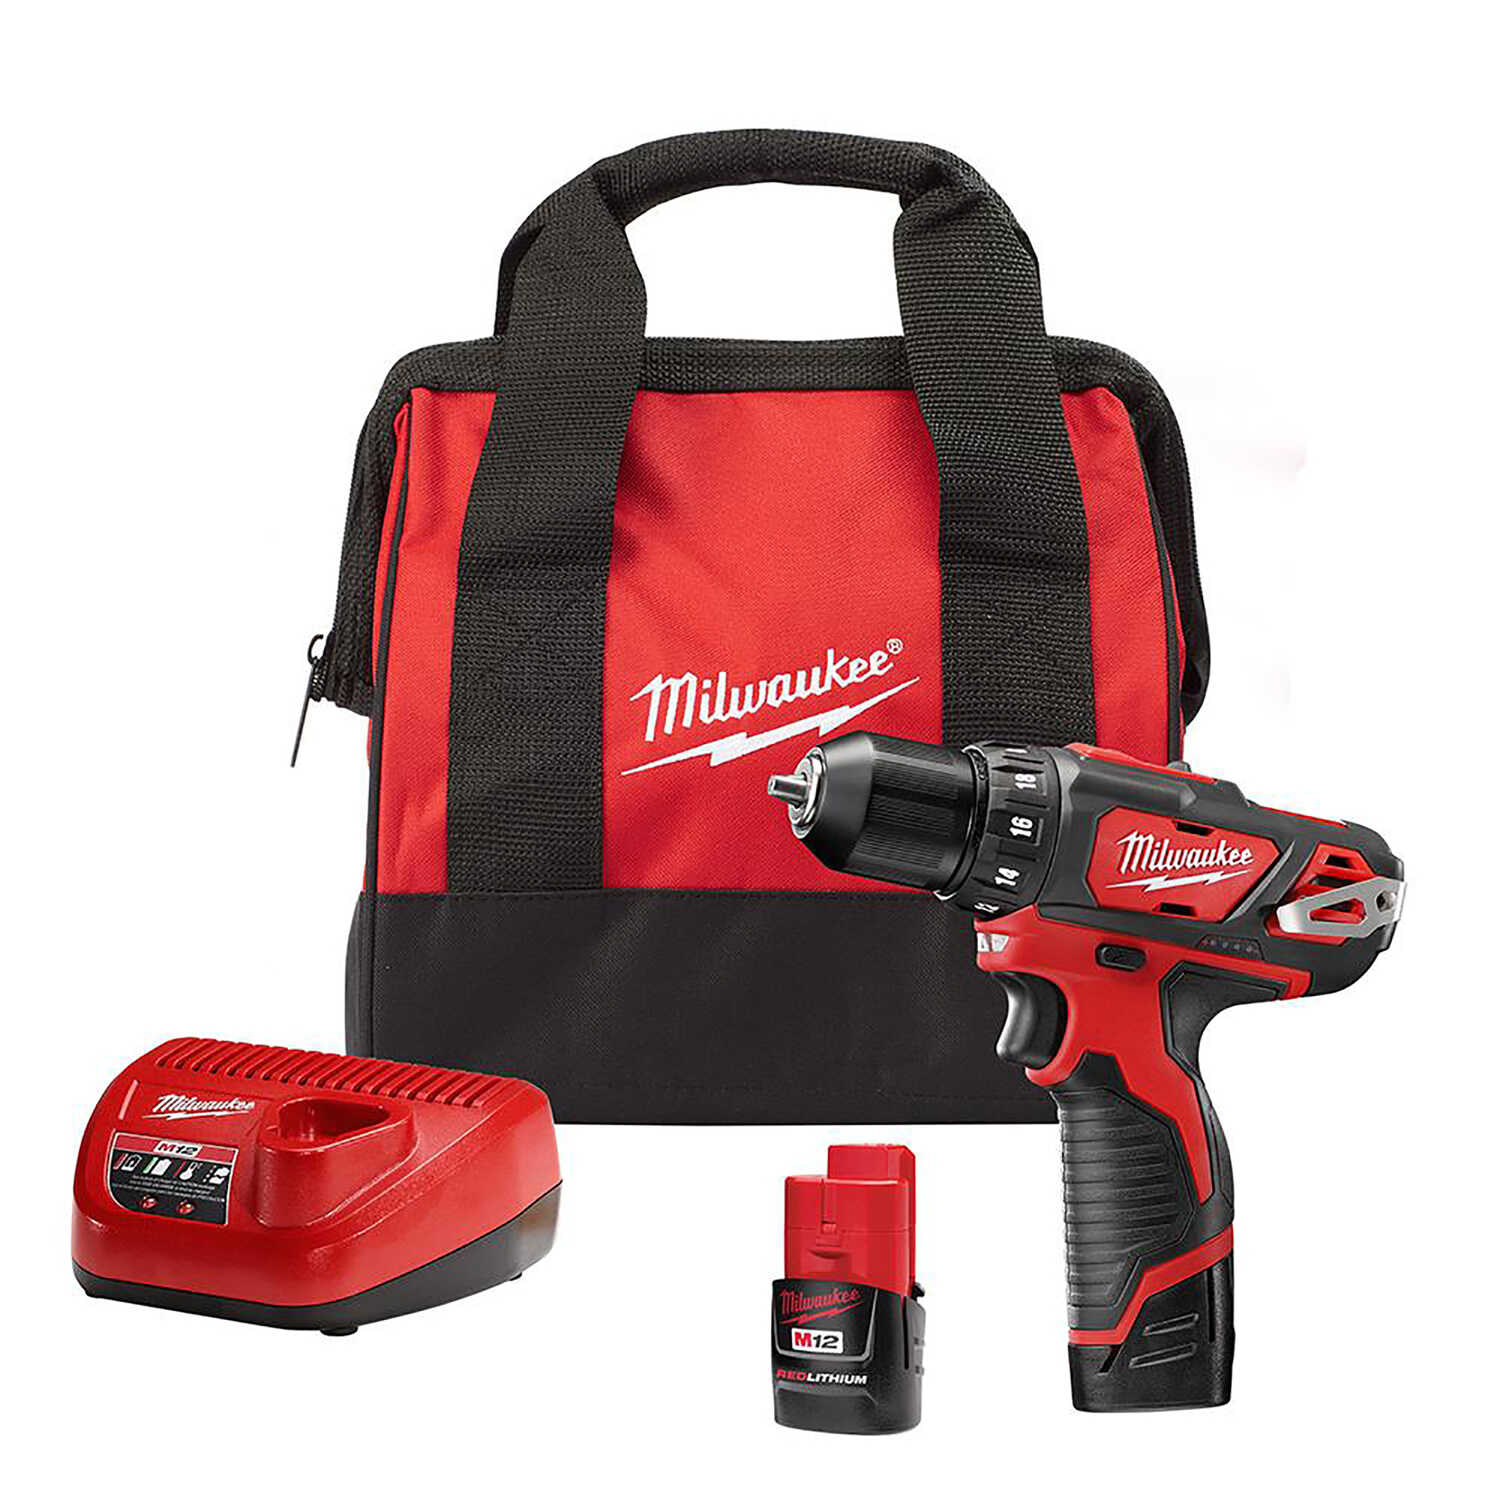 Milwaukee  M12  12 volt Brushed  Cordless Compact Drill/Driver  Kit  3/8 in. 1500 rpm